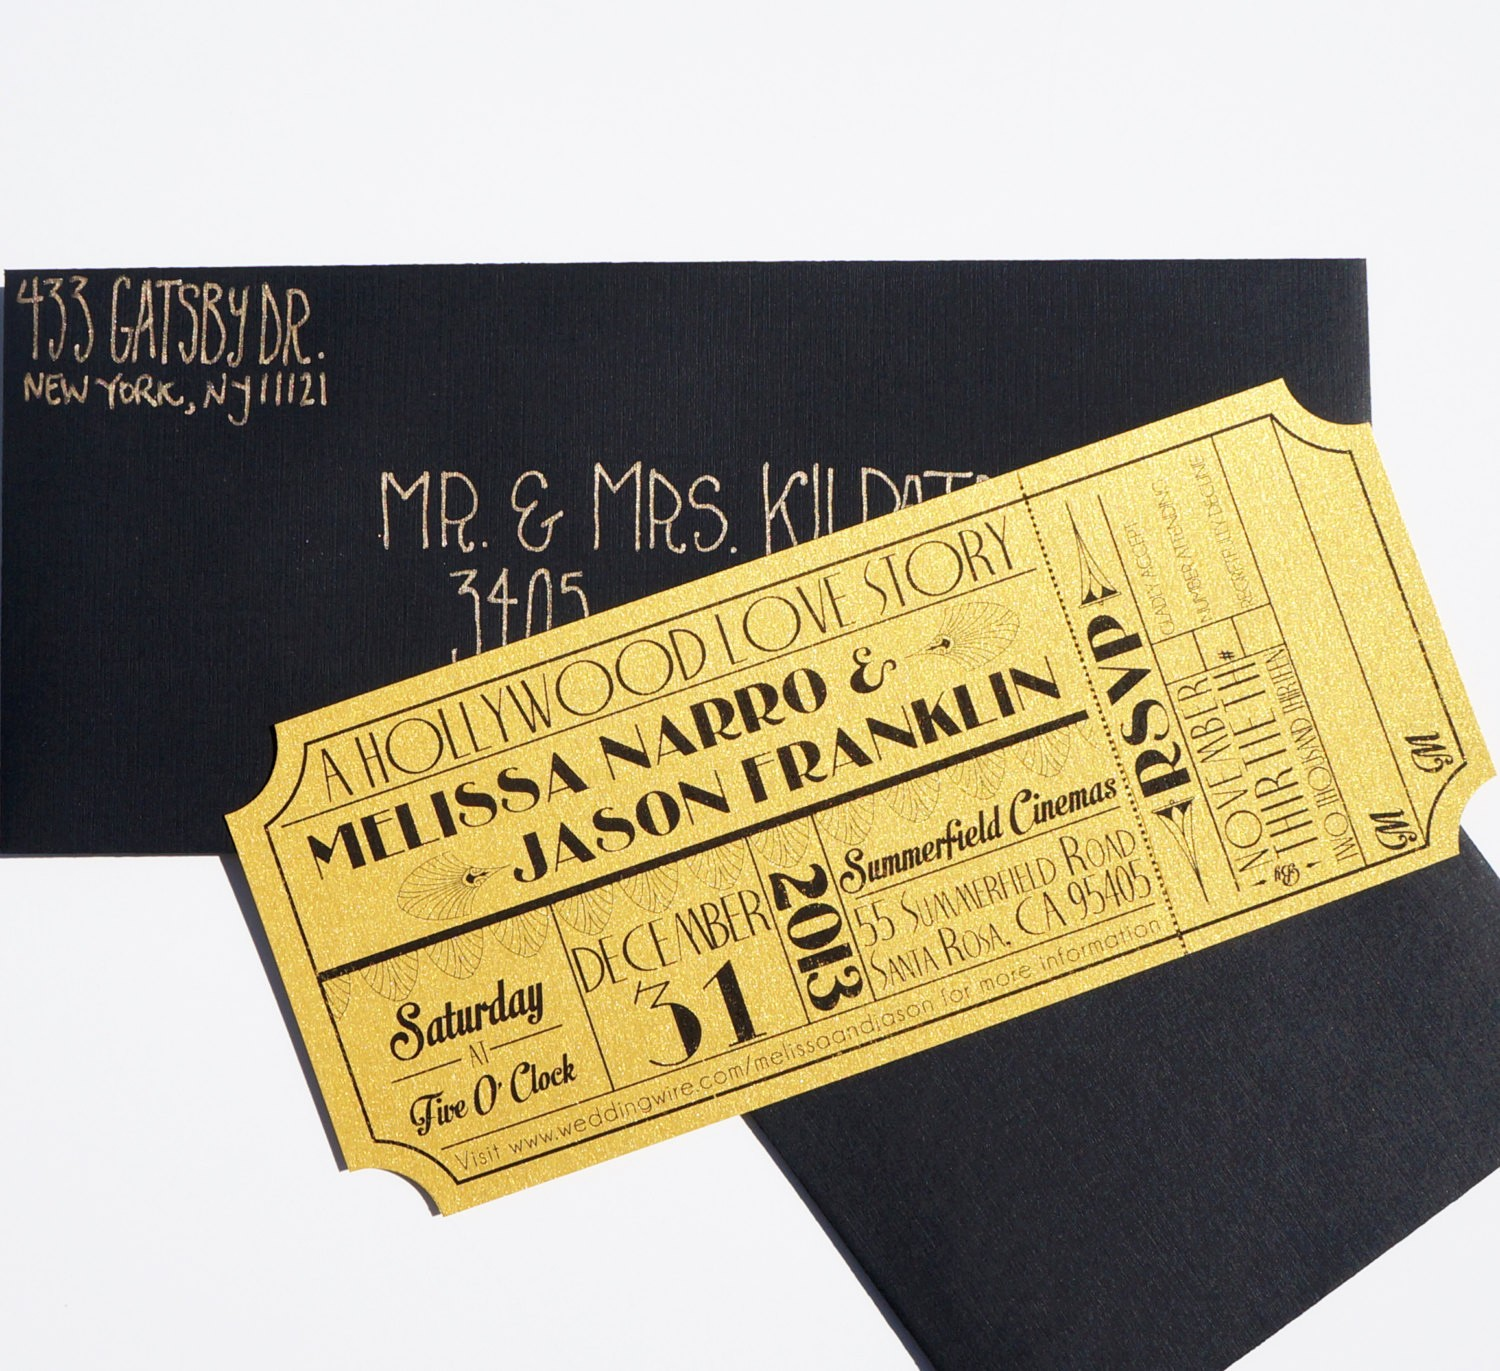 How to Make Ticket Invitations Luxury Old Hollywood Art Deco Gold Movie Ticket Invitation Sample